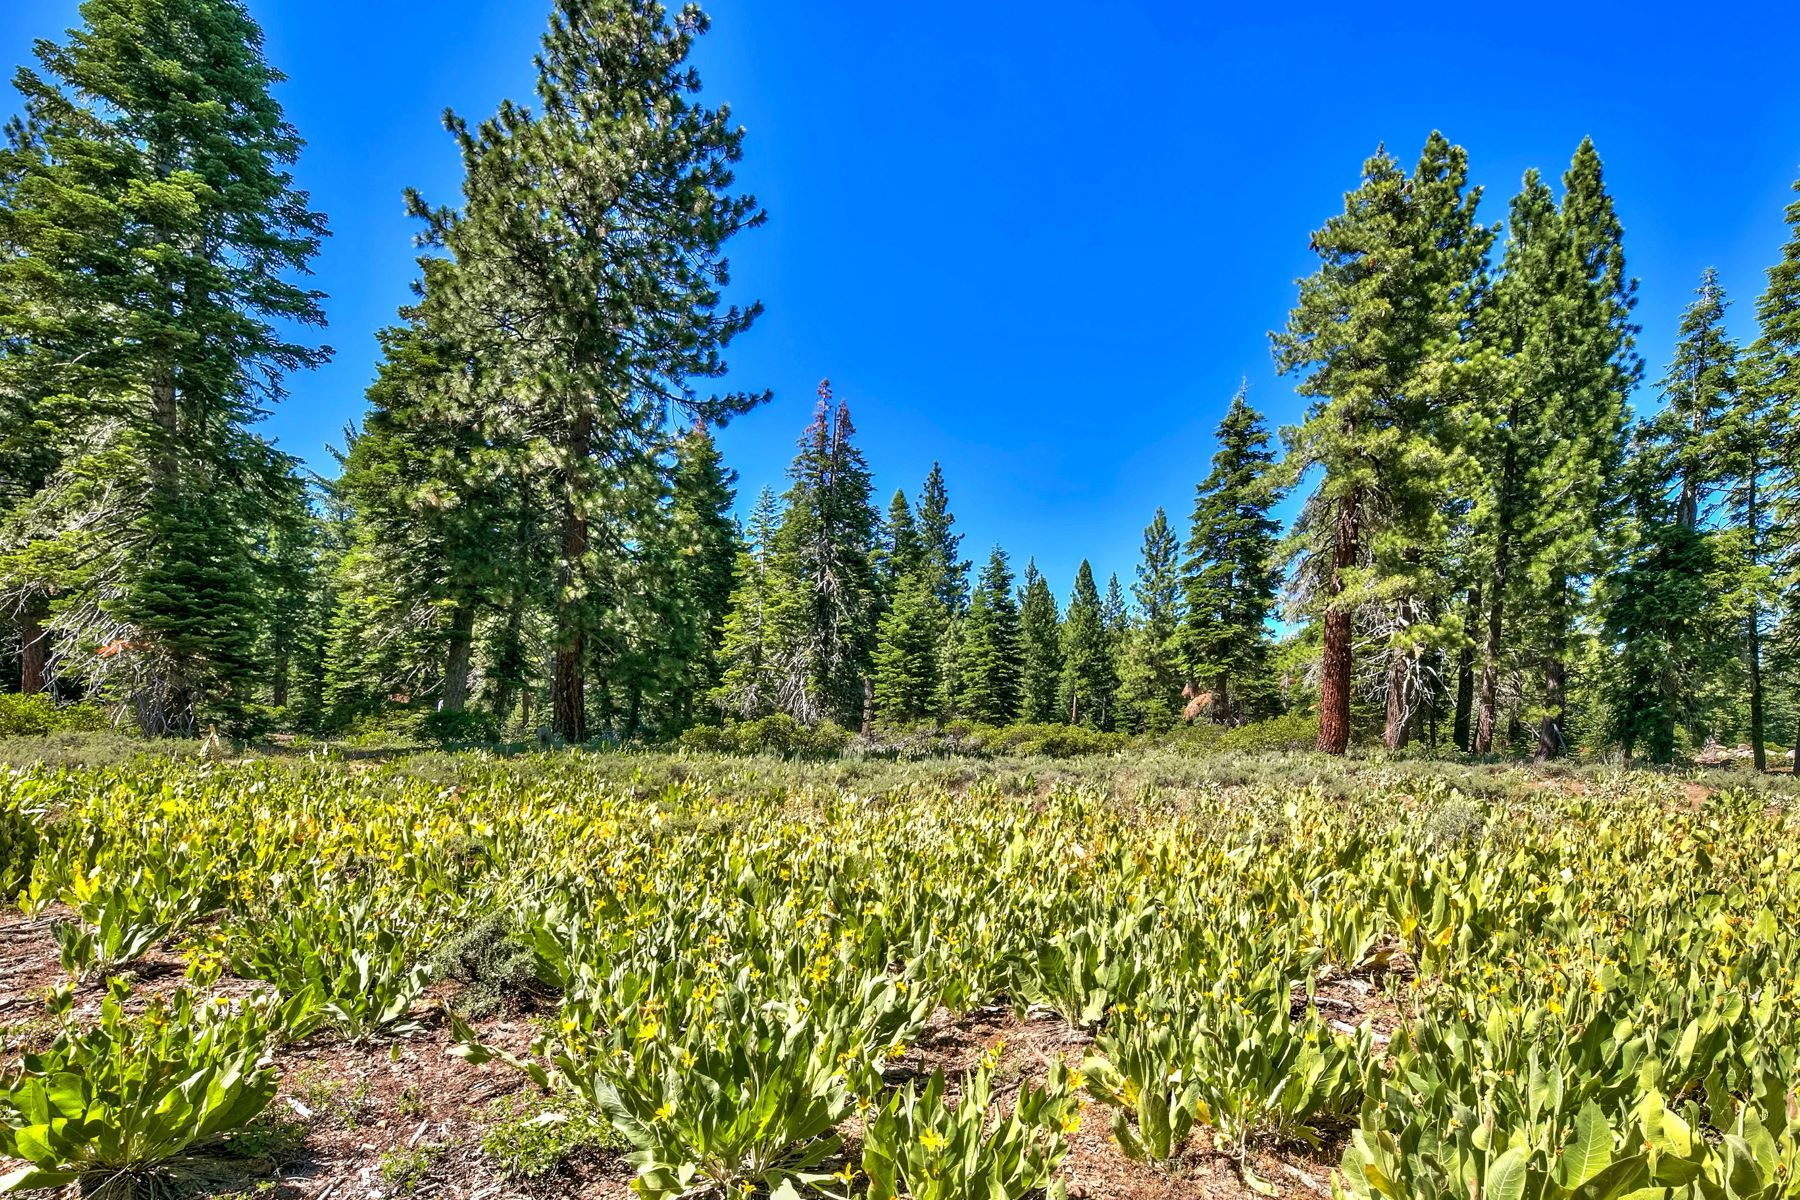 Additional photo for property listing at 11743 Lockwood Dr, Truckee, CA 96161 11743 Lockwood Dr. Truckee, California 96161 United States